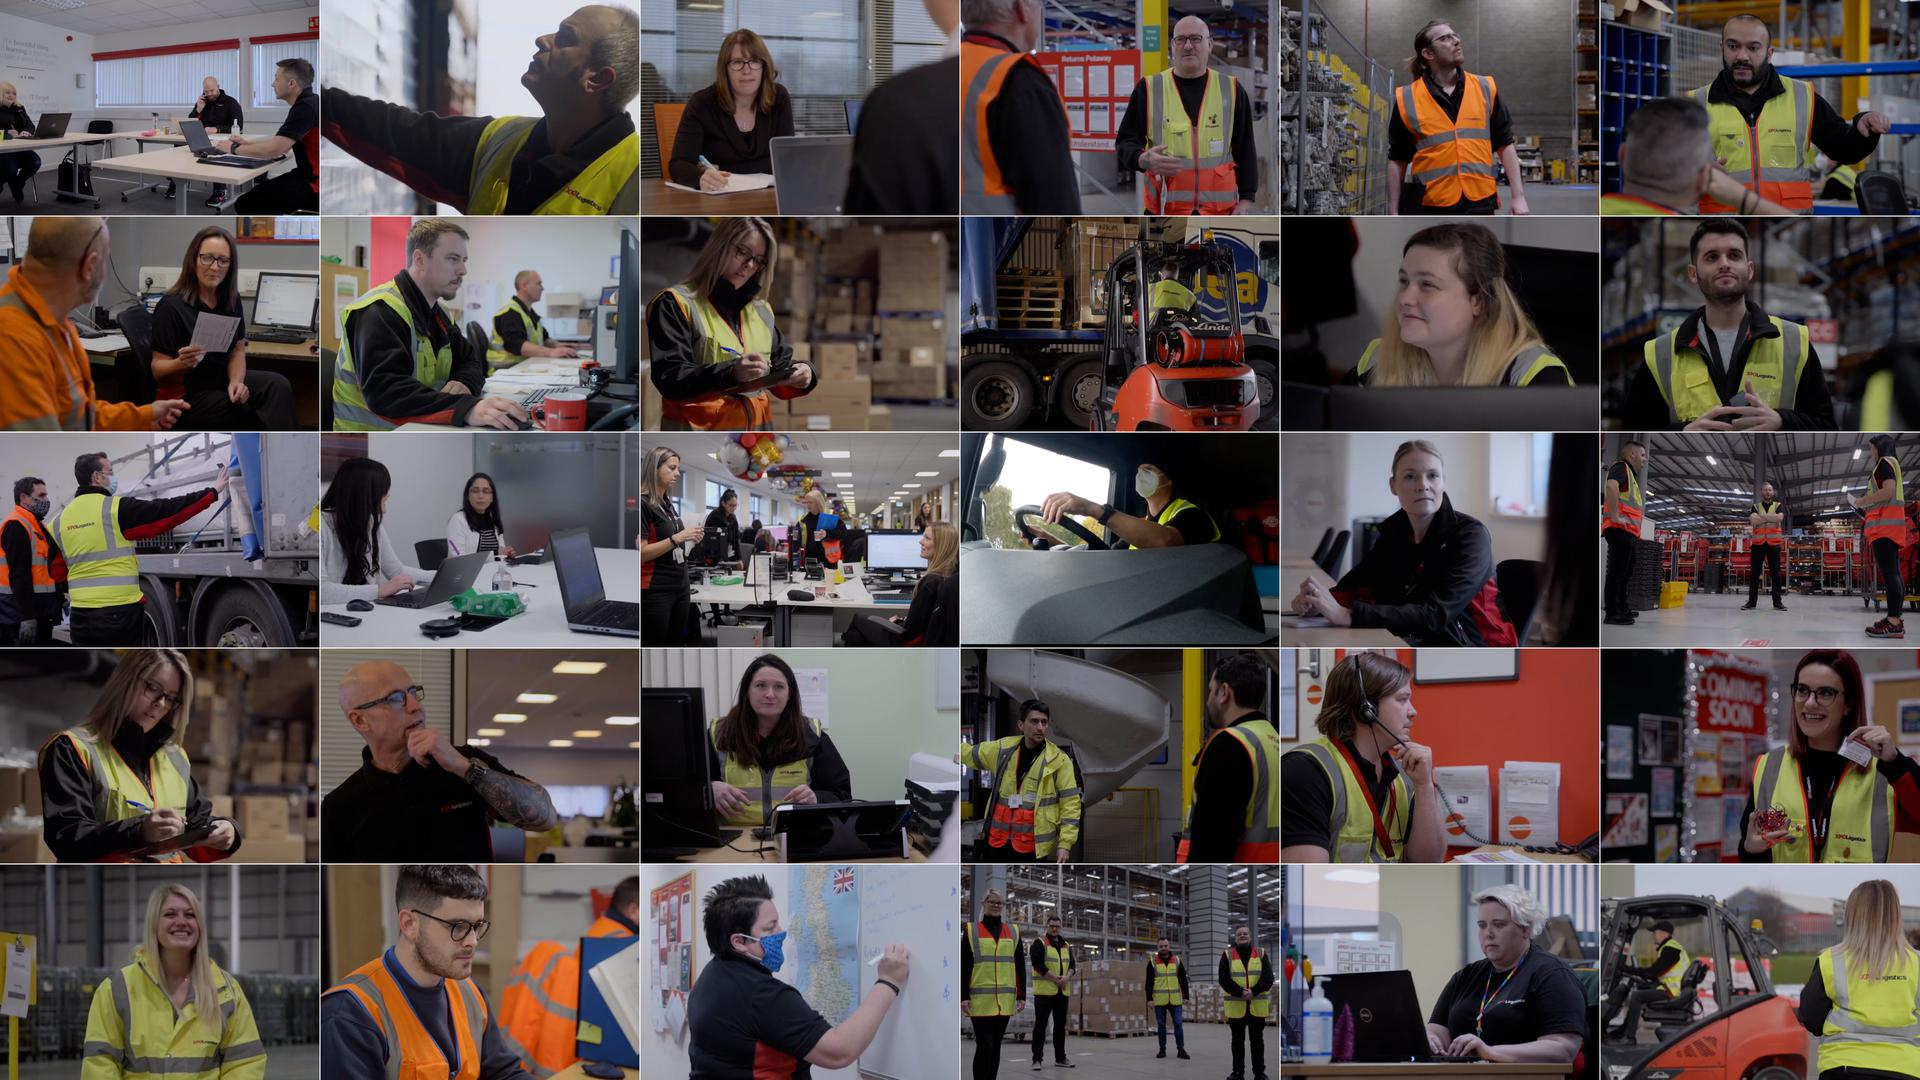 XPO employees in the UK: collage